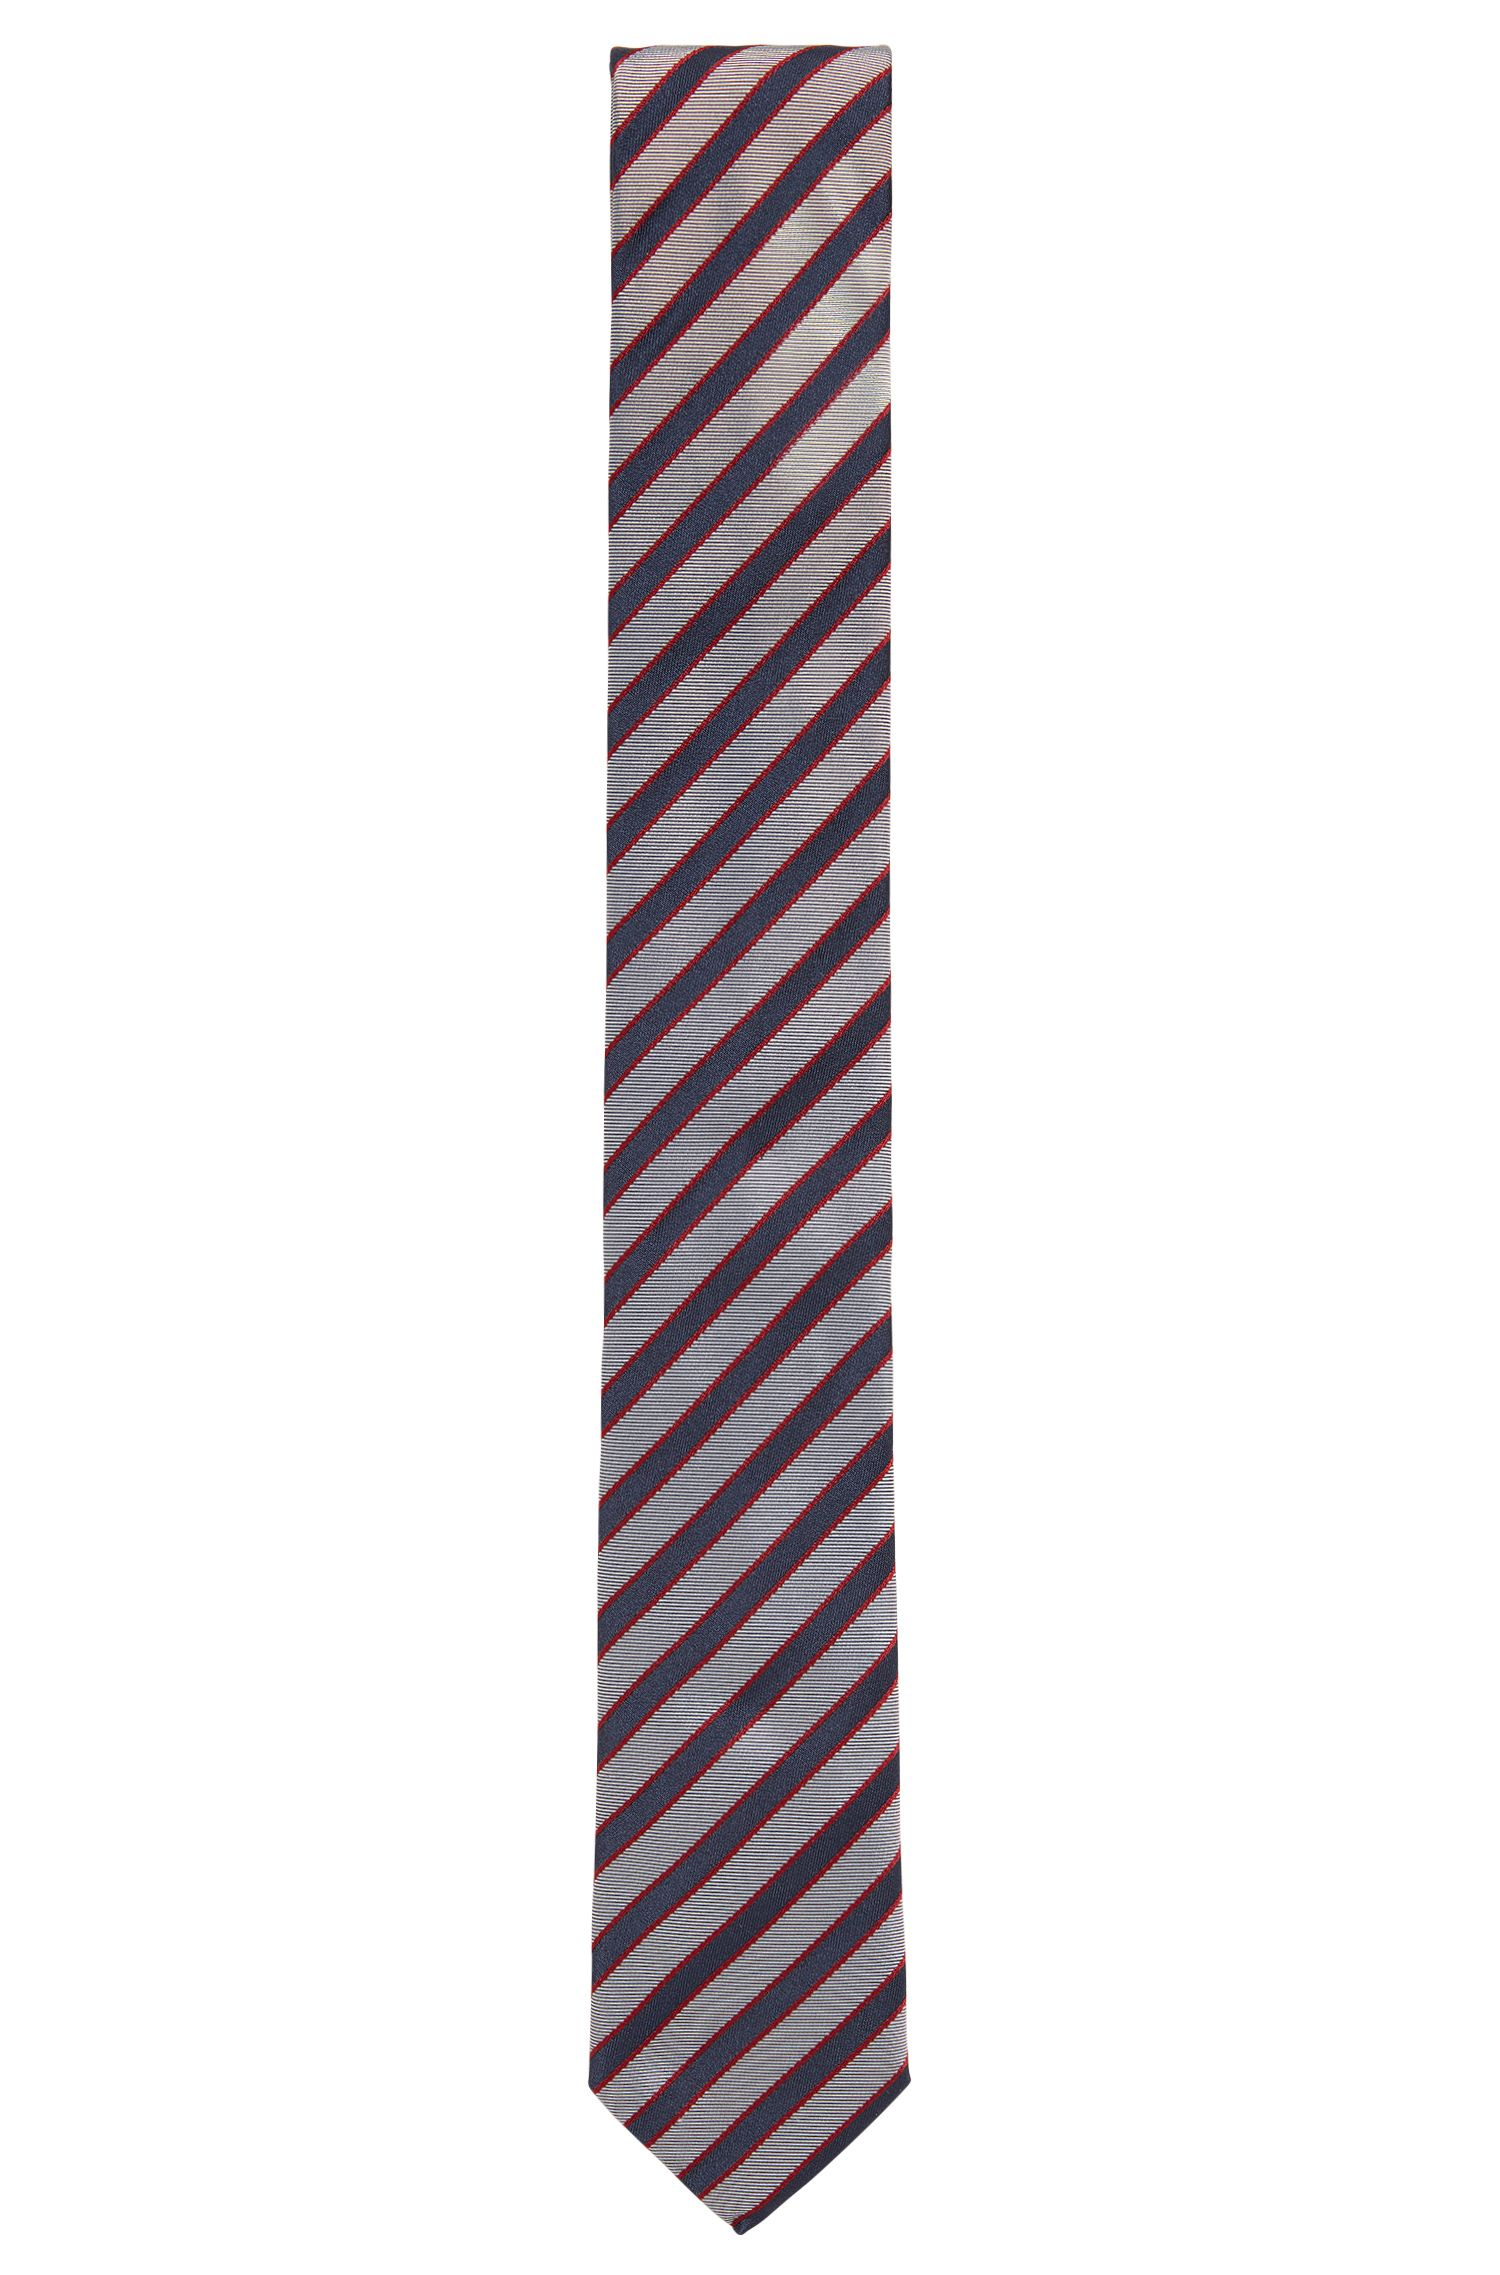 Silk jacquard tie with diagonal stripes